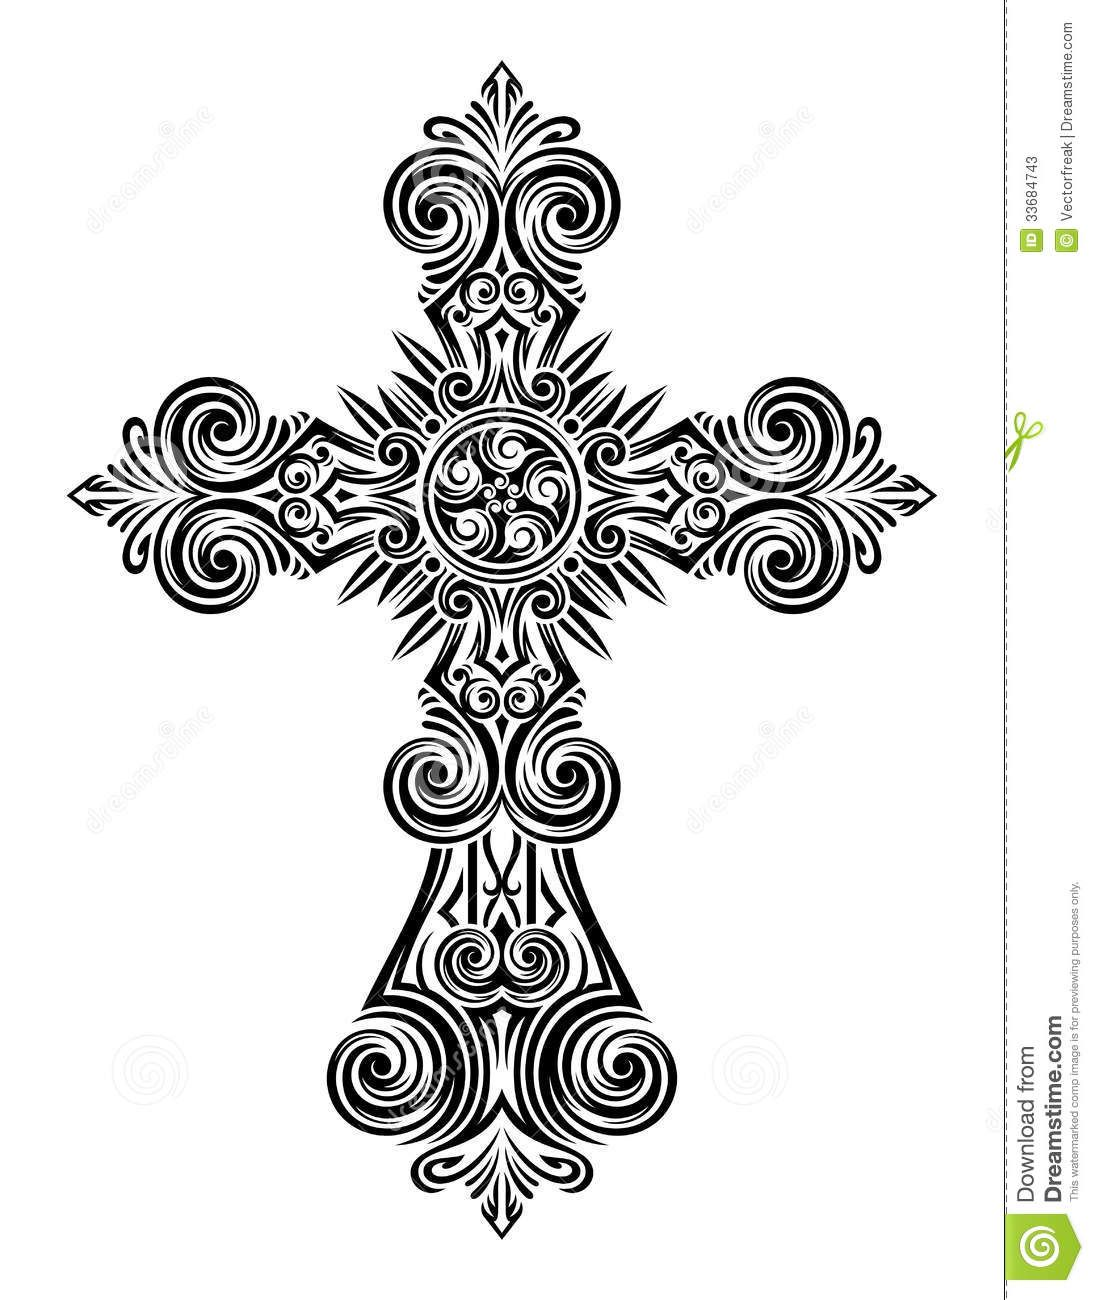 Vintage Cross Vector Fully Illustration Eps Black Isolated